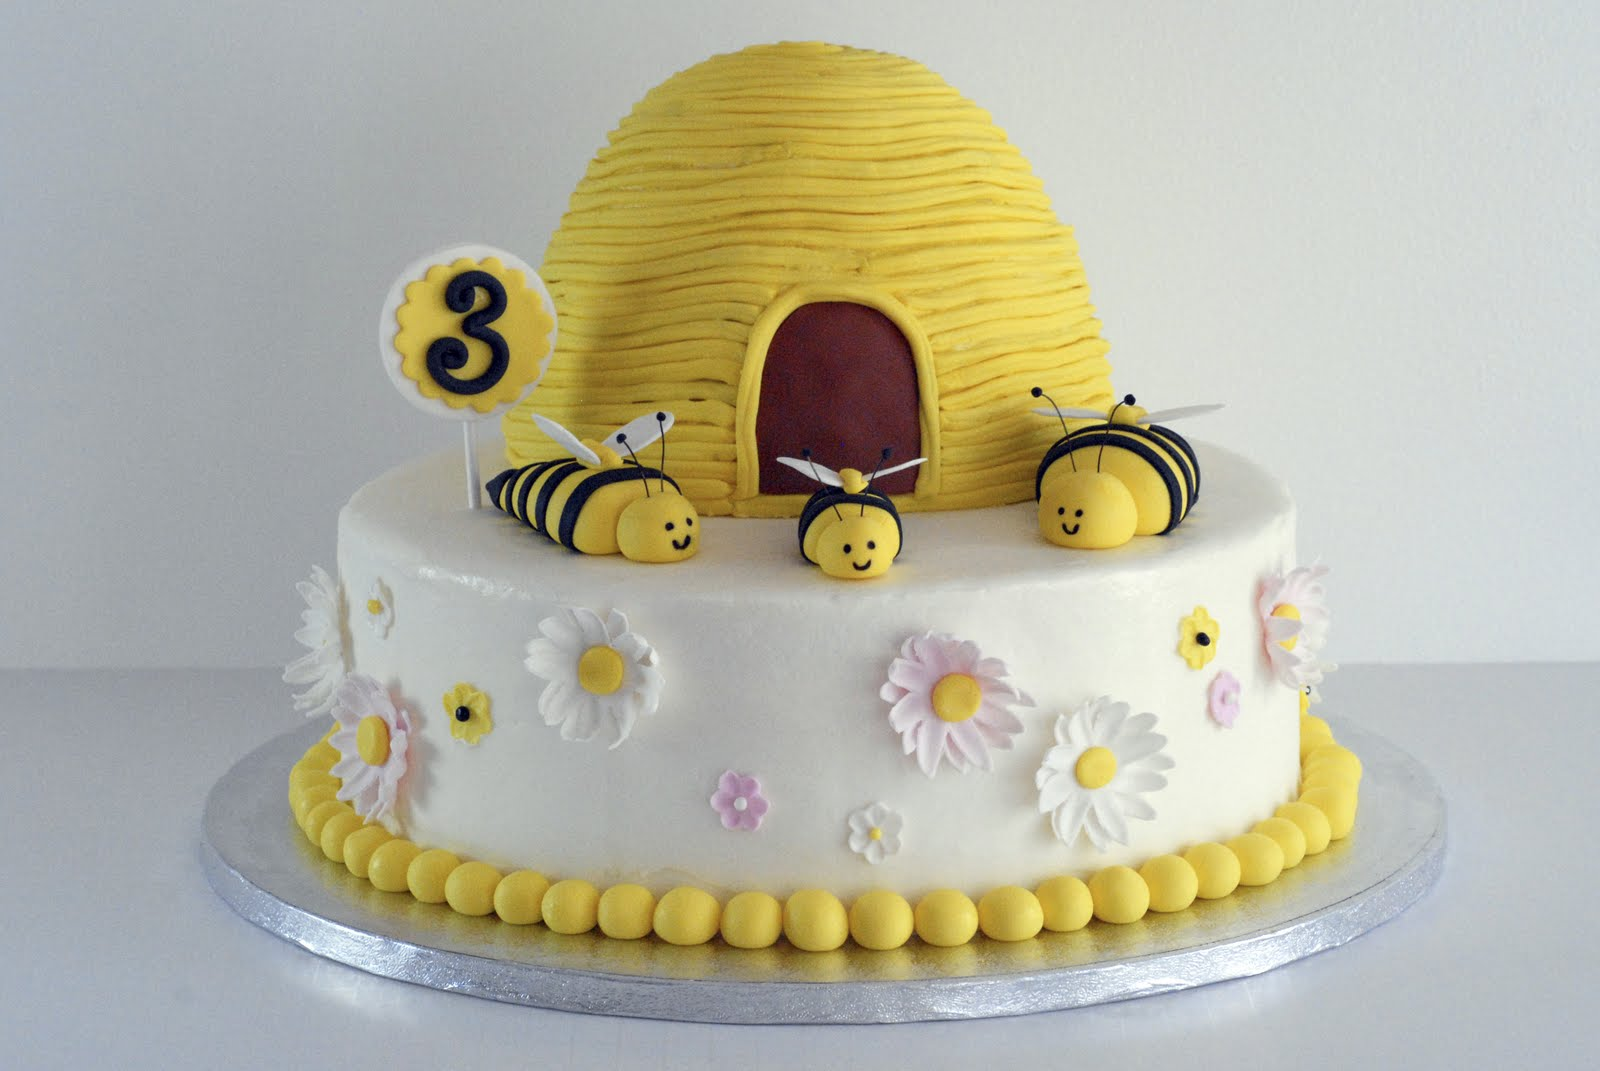 Fabulous Bumble Bee Cakes Decoration Ideas Little Birthday Cakes Personalised Birthday Cards Paralily Jamesorg